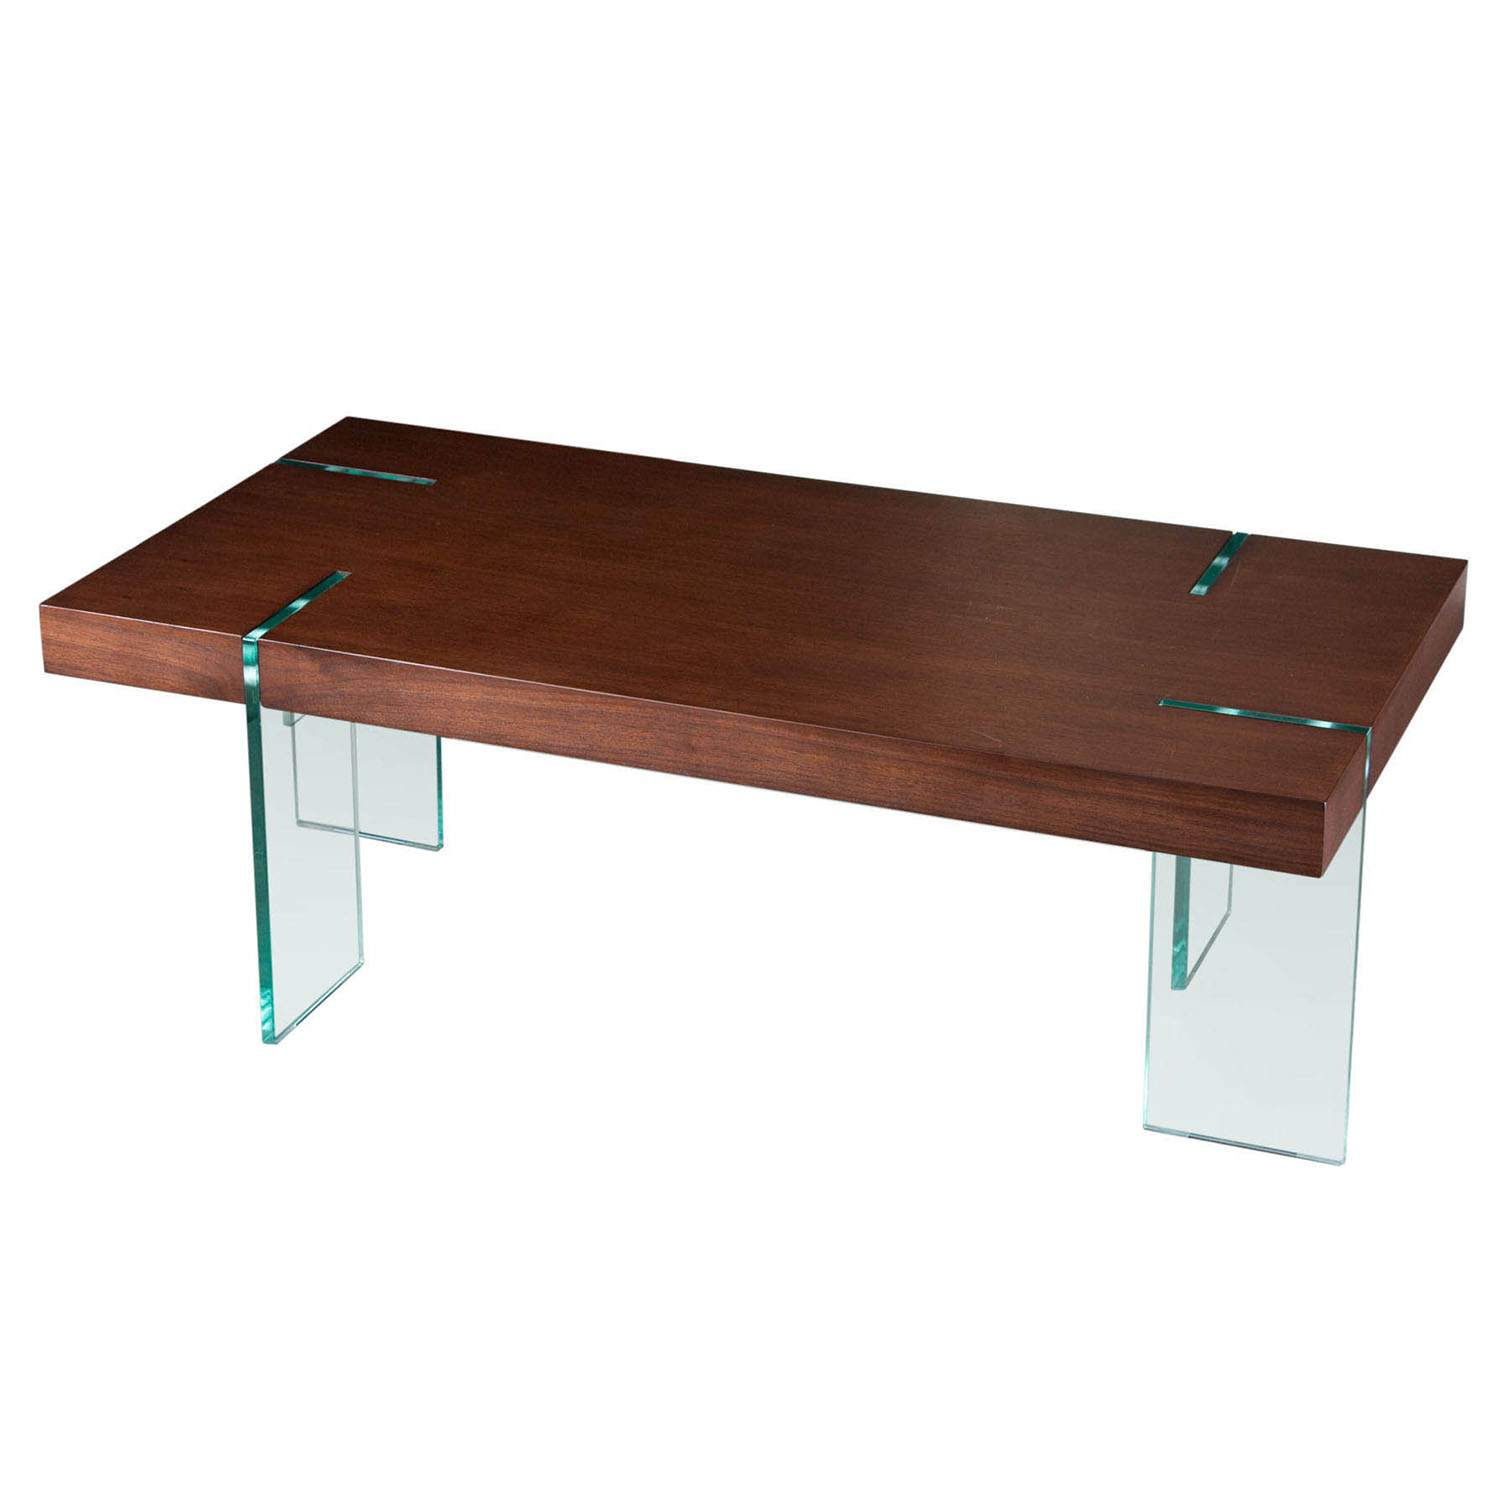 Purchase Glass Leg Cocktail Table Multiple Top Options Product Photo